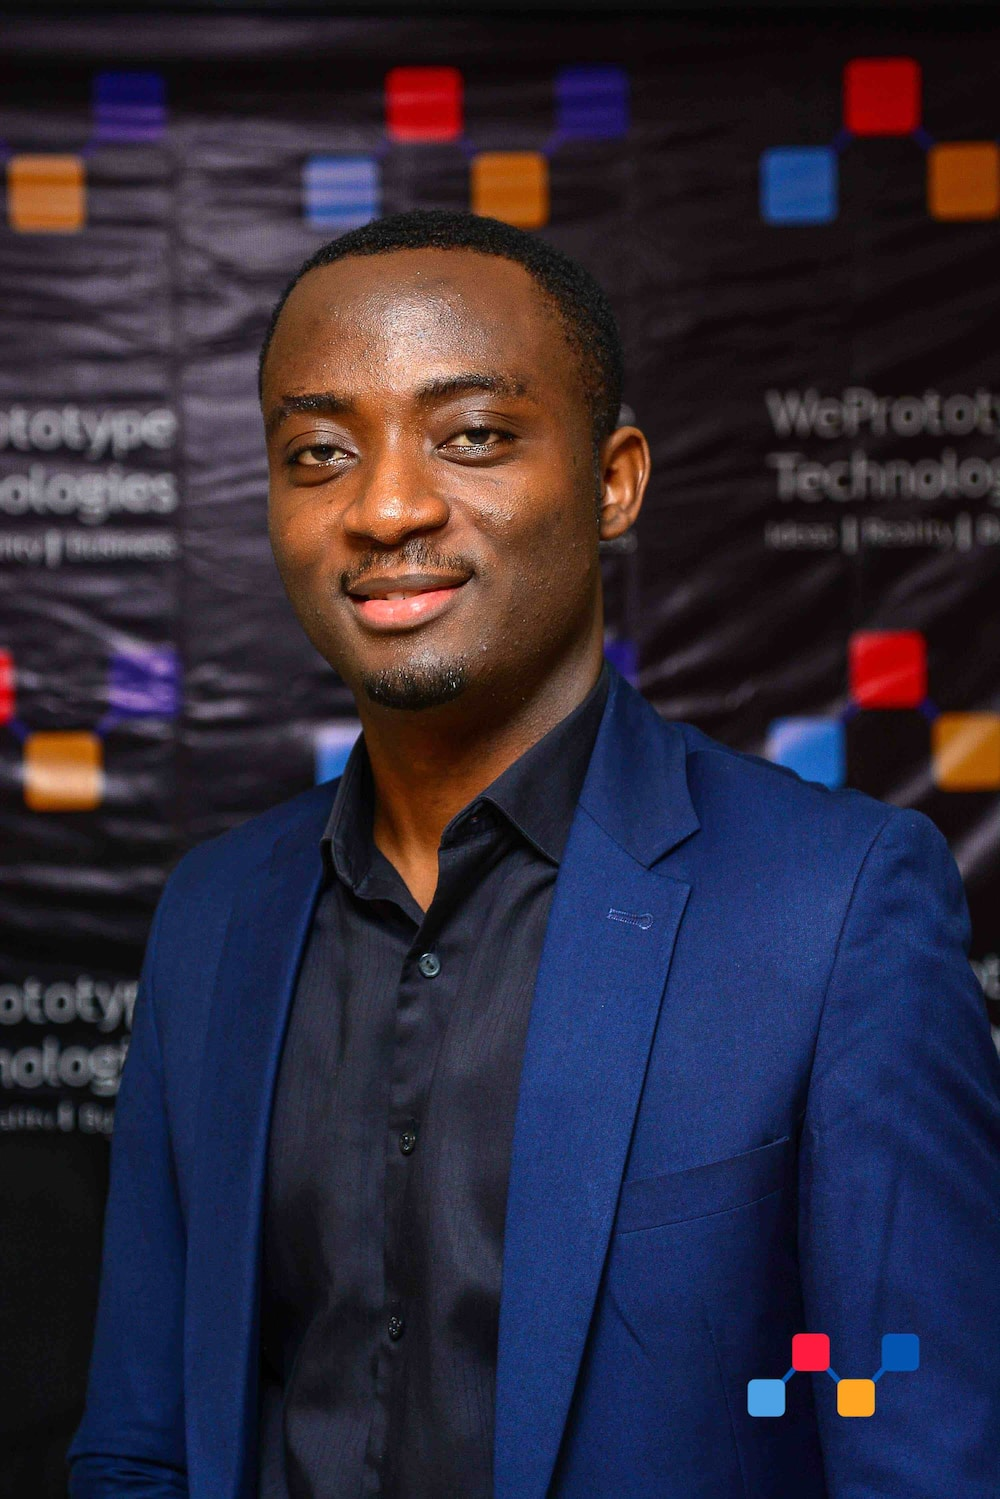 Developing apps has never been this easy and affordable in Nigeria